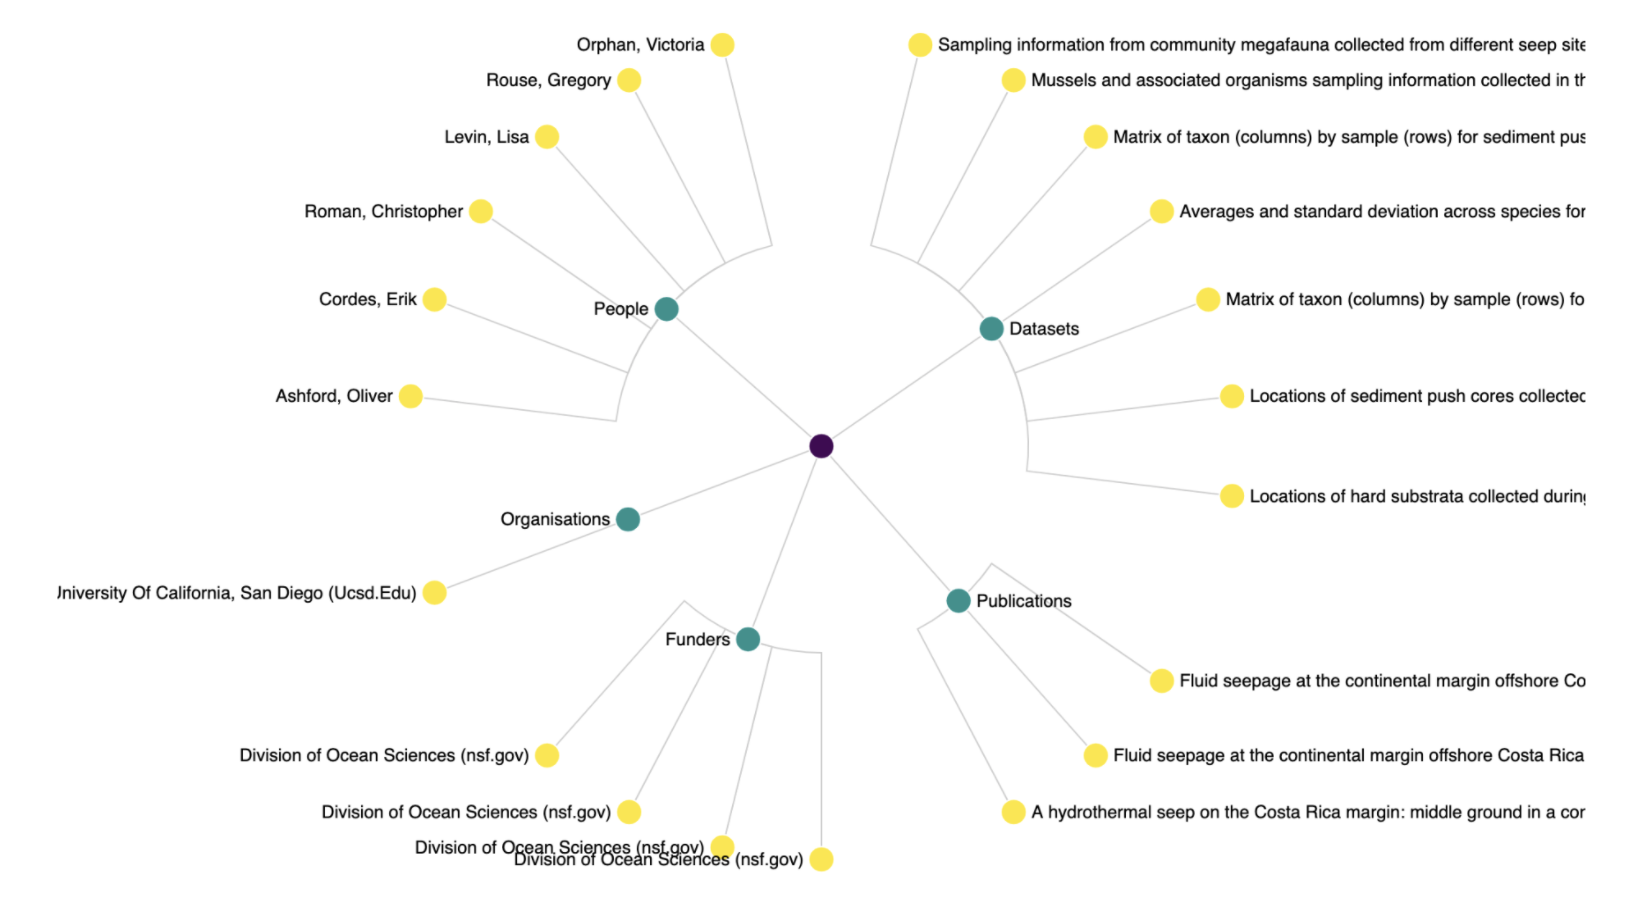 Figure 1: Visualization of the connections between a DMP and related datasets, publications, funders, organizations and people.